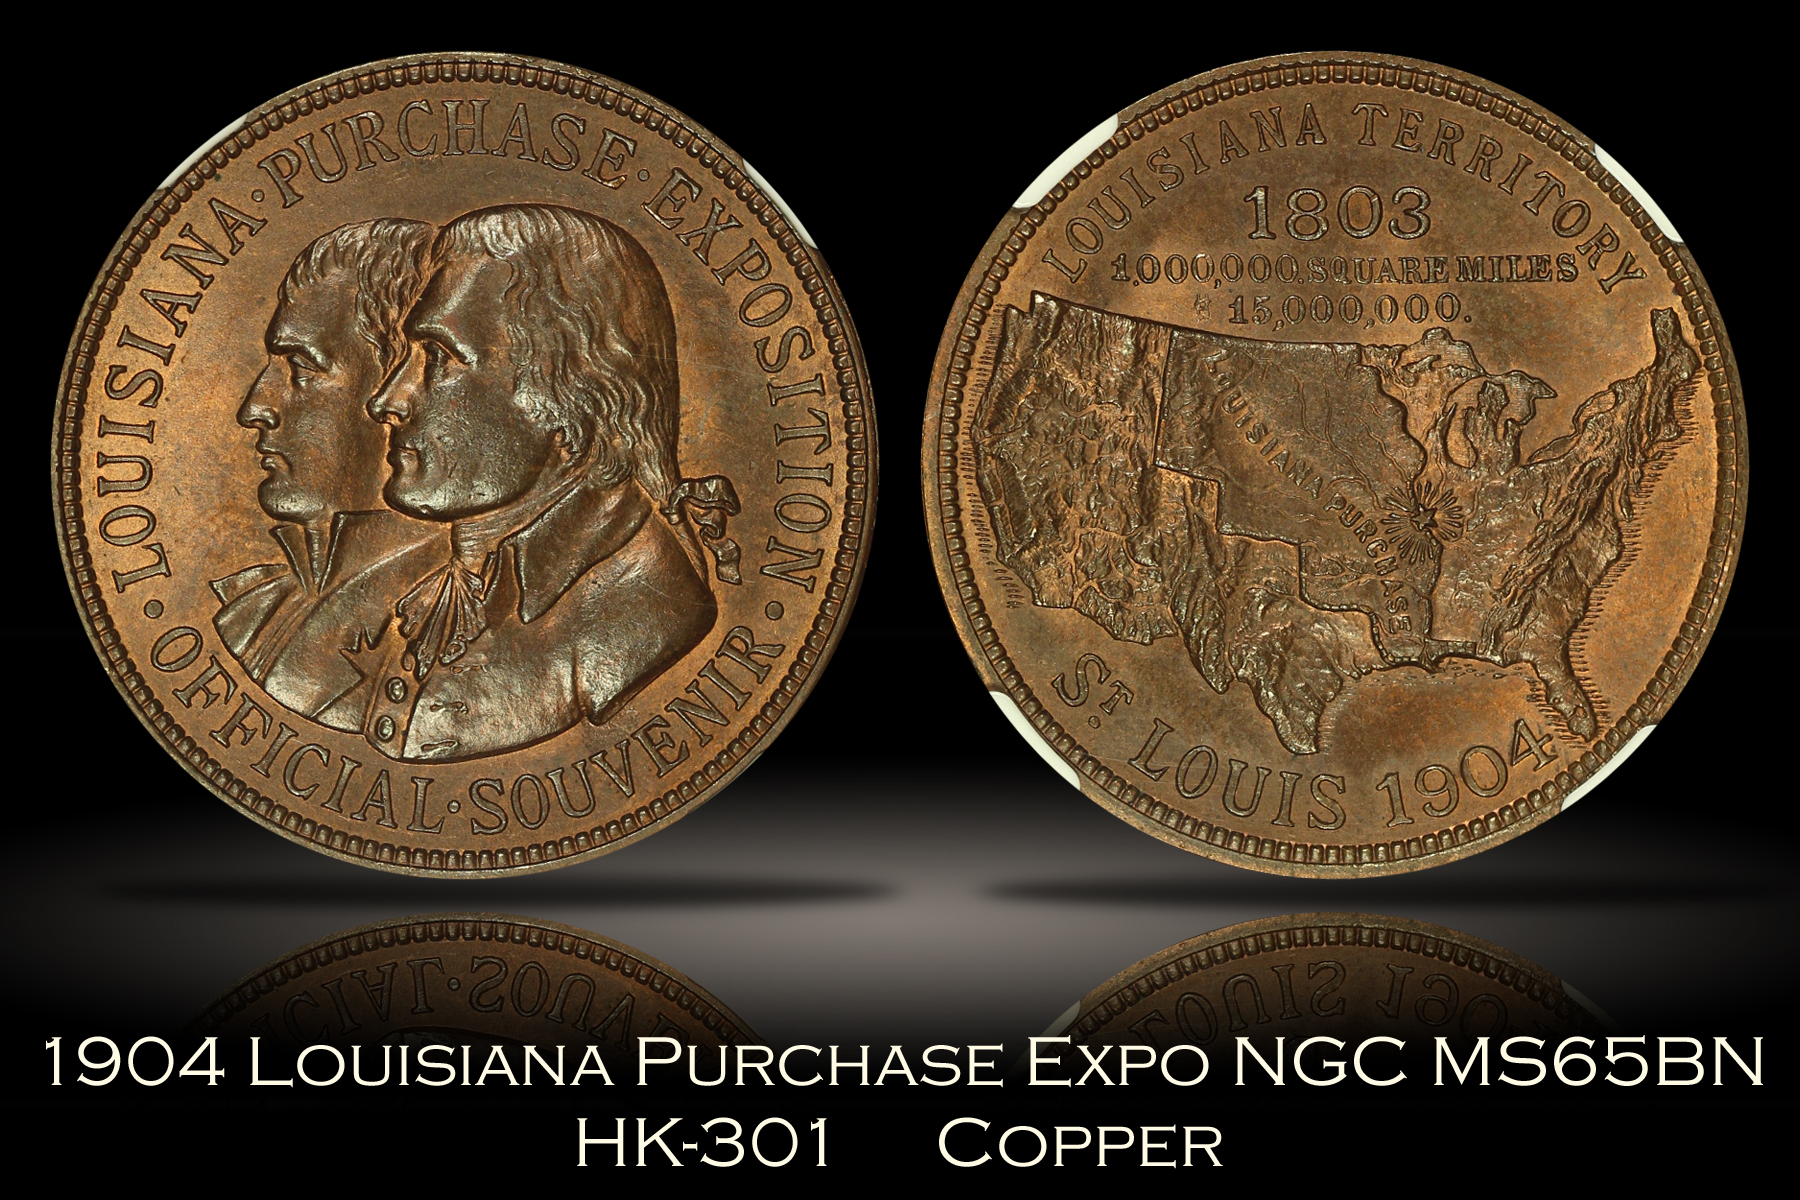 1904 Louisiana Purchase Expo Official Medal HK-301 NGC MS65BN